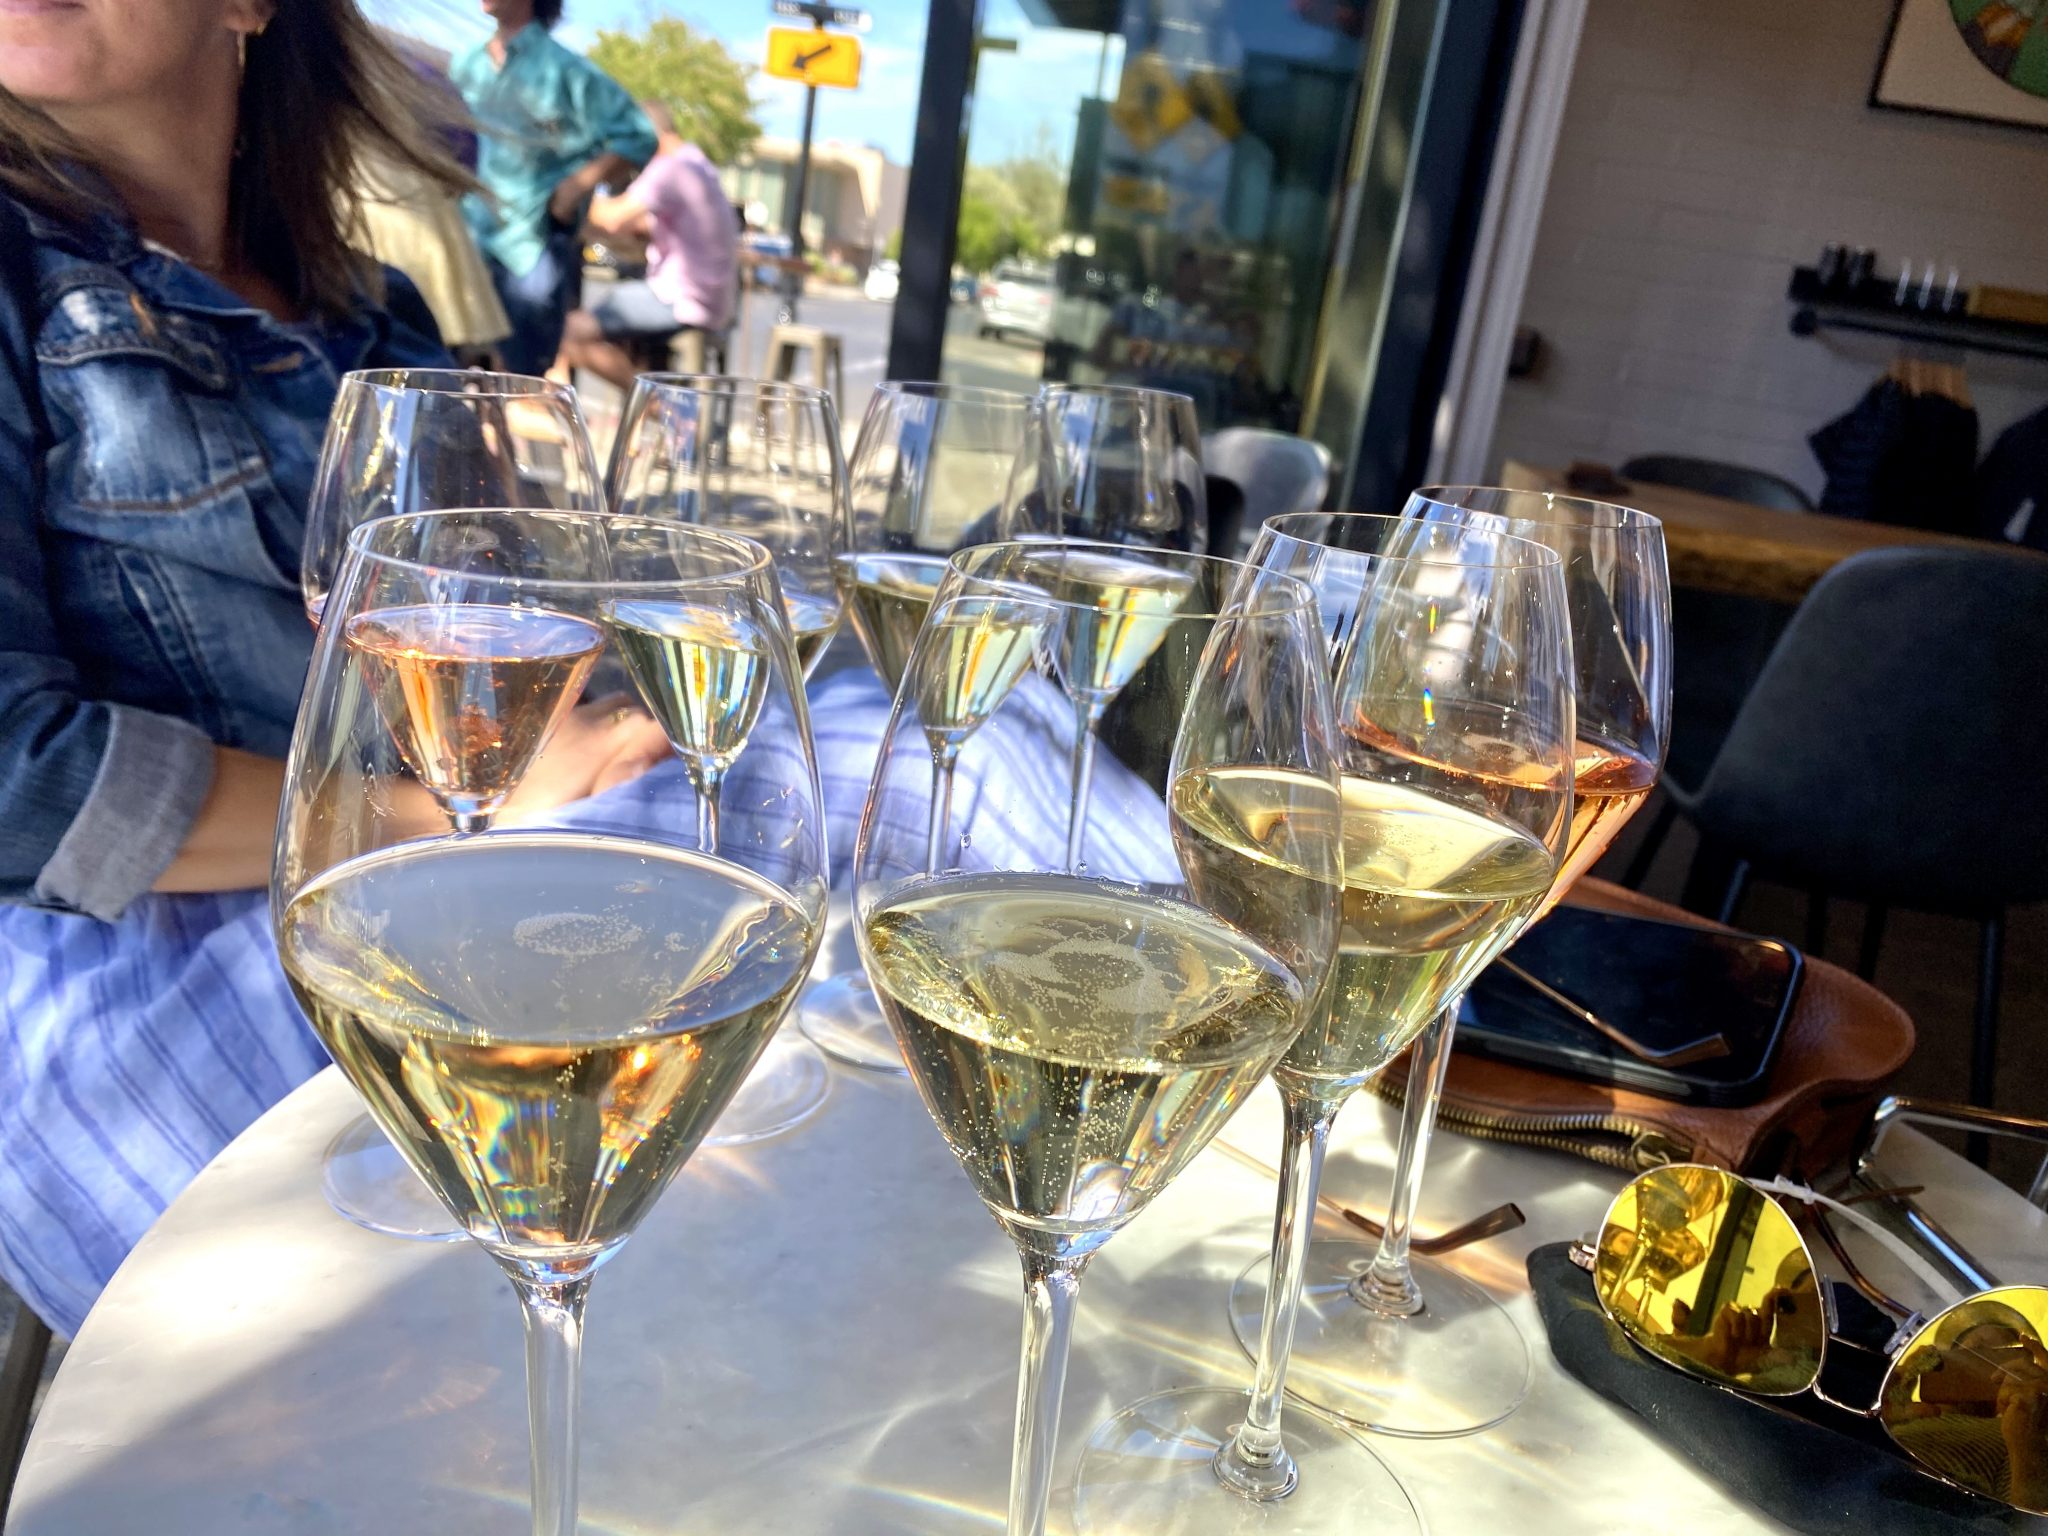 Champagne in glasses as part of sparkling wine flight at Be Bubbly tasting room in Downtown Napa